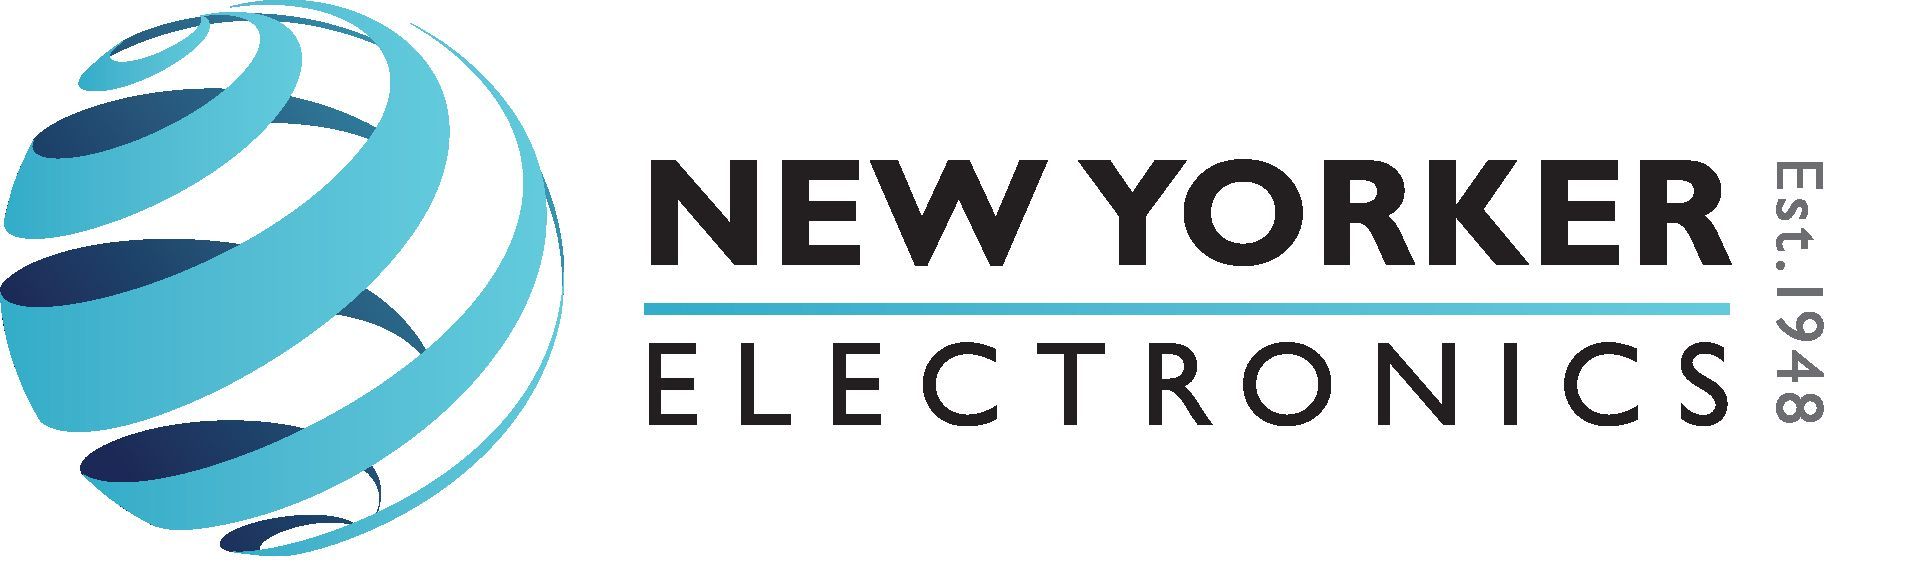 New Yorker Electronics Logo